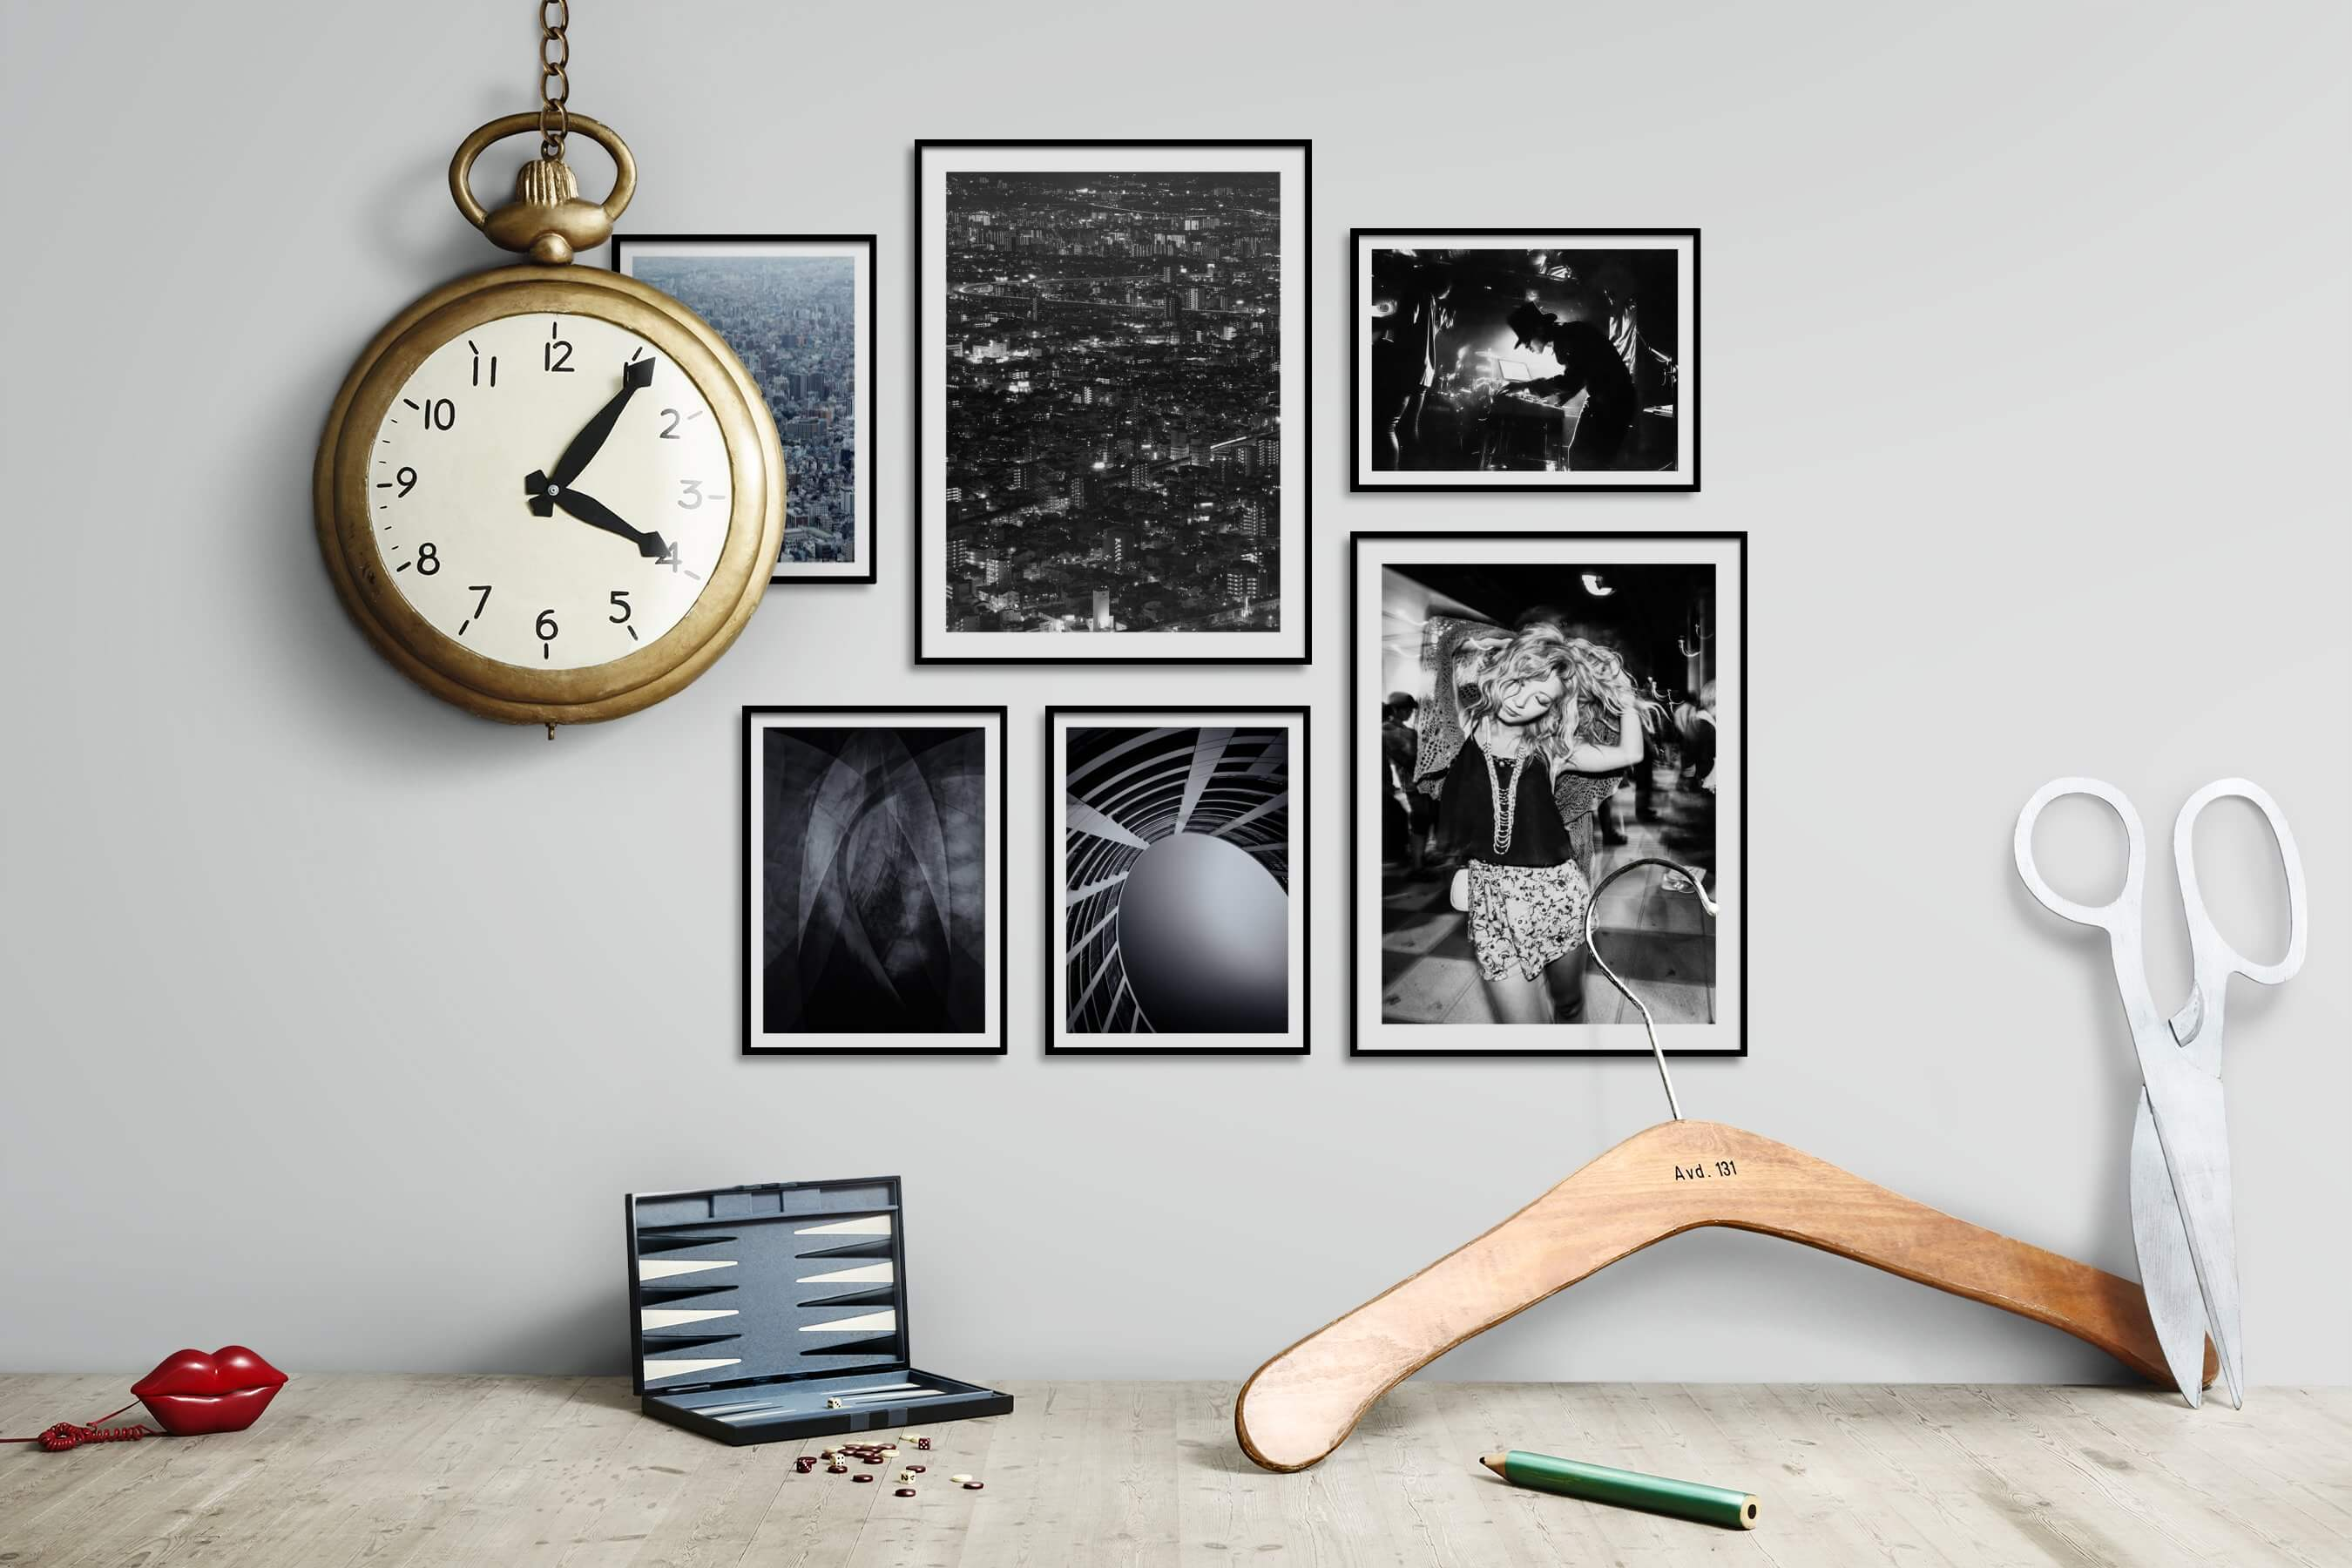 Gallery wall idea with six framed pictures arranged on a wall depicting For the Maximalist, City Life, Black & White, For the Moderate, and Fashion & Beauty